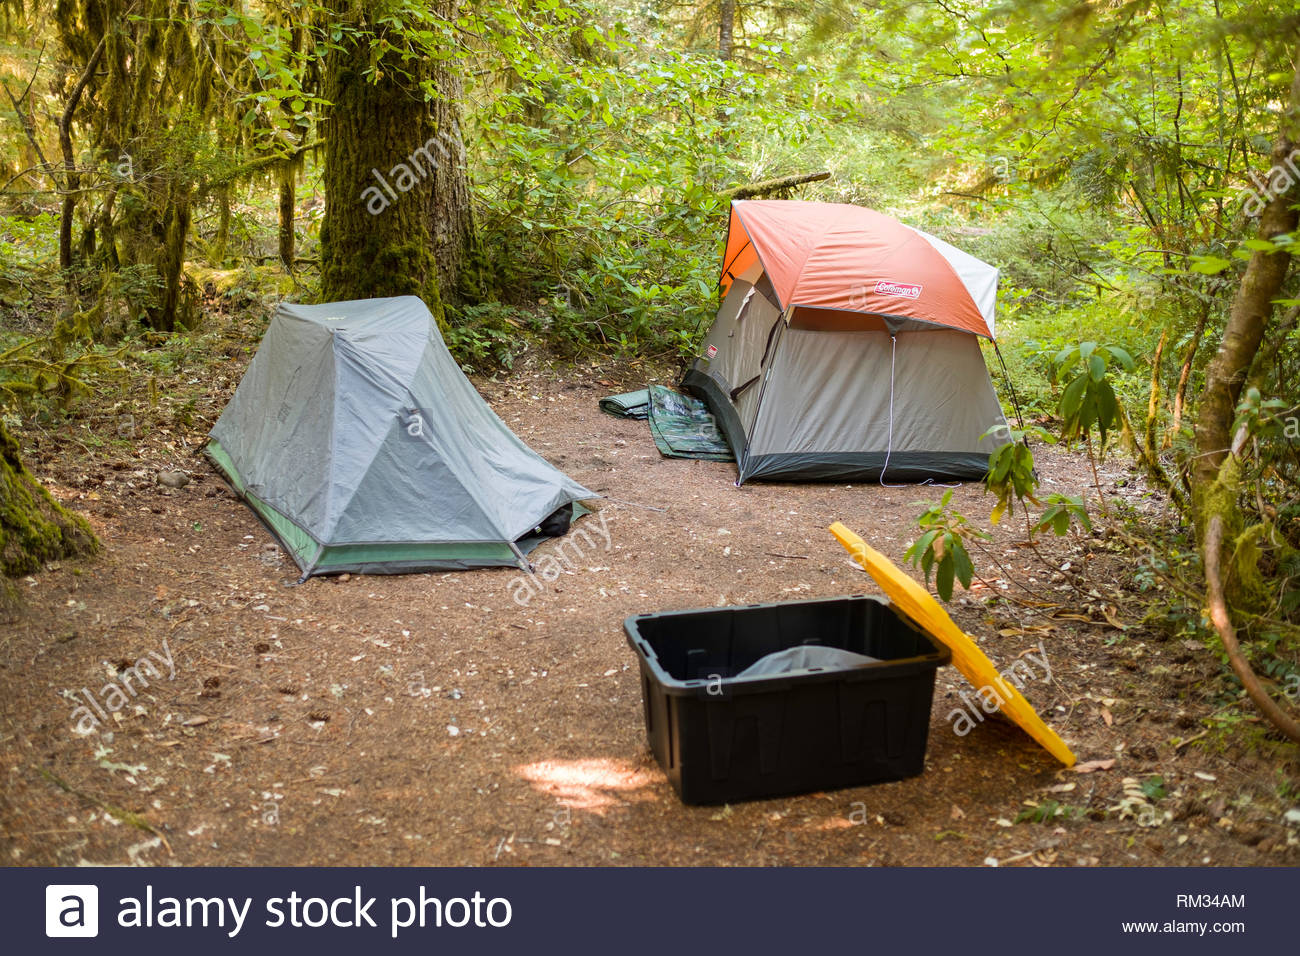 Two small tents setup in clearing at Humbug Campground, Willamette National Forest, Marion County, Oregon, USA - Stock Image